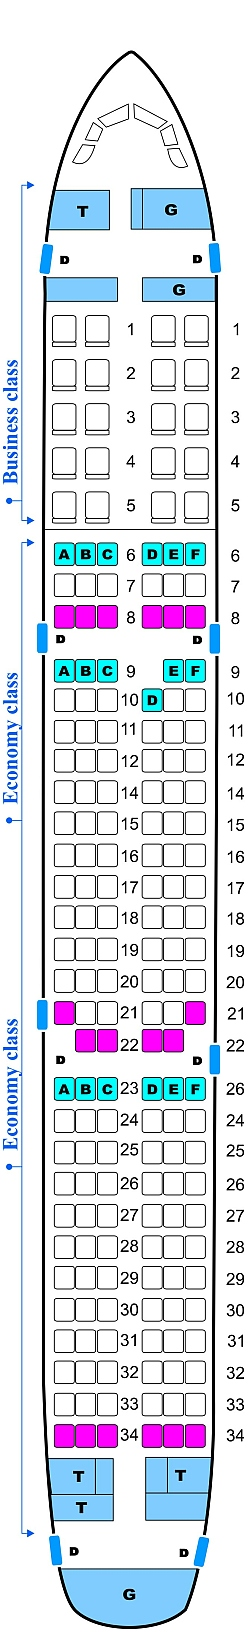 Seat Map Cyprus Turkish Airlines Airbus A321 | SeatMaestro